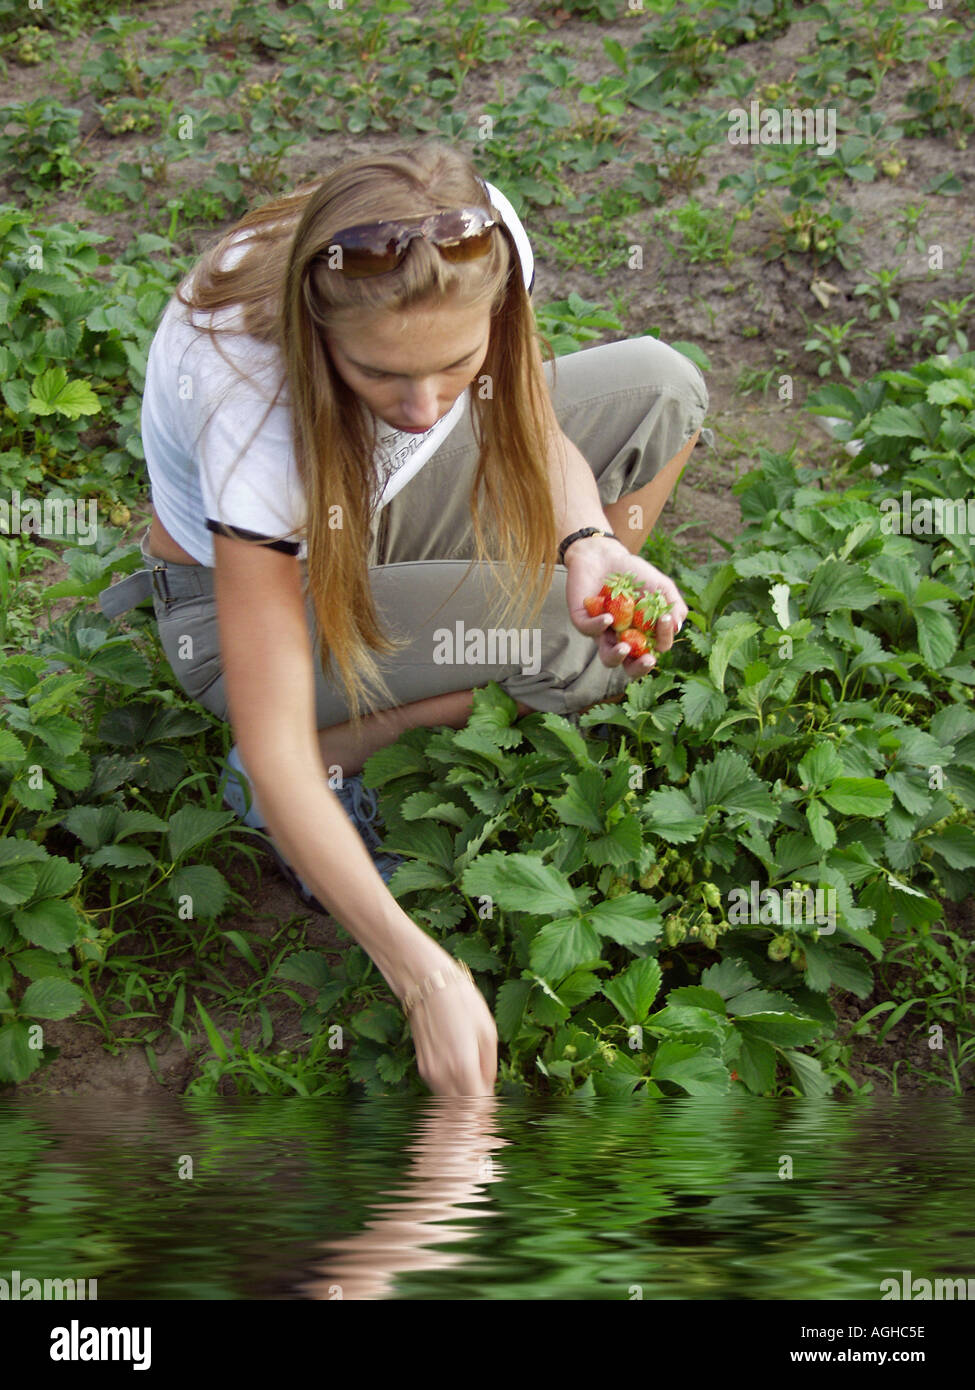 Woman age 27 crouching beside a country stream while holding freshly picked strawberries in one hand and fingers of her other hand in the water - Stock Image